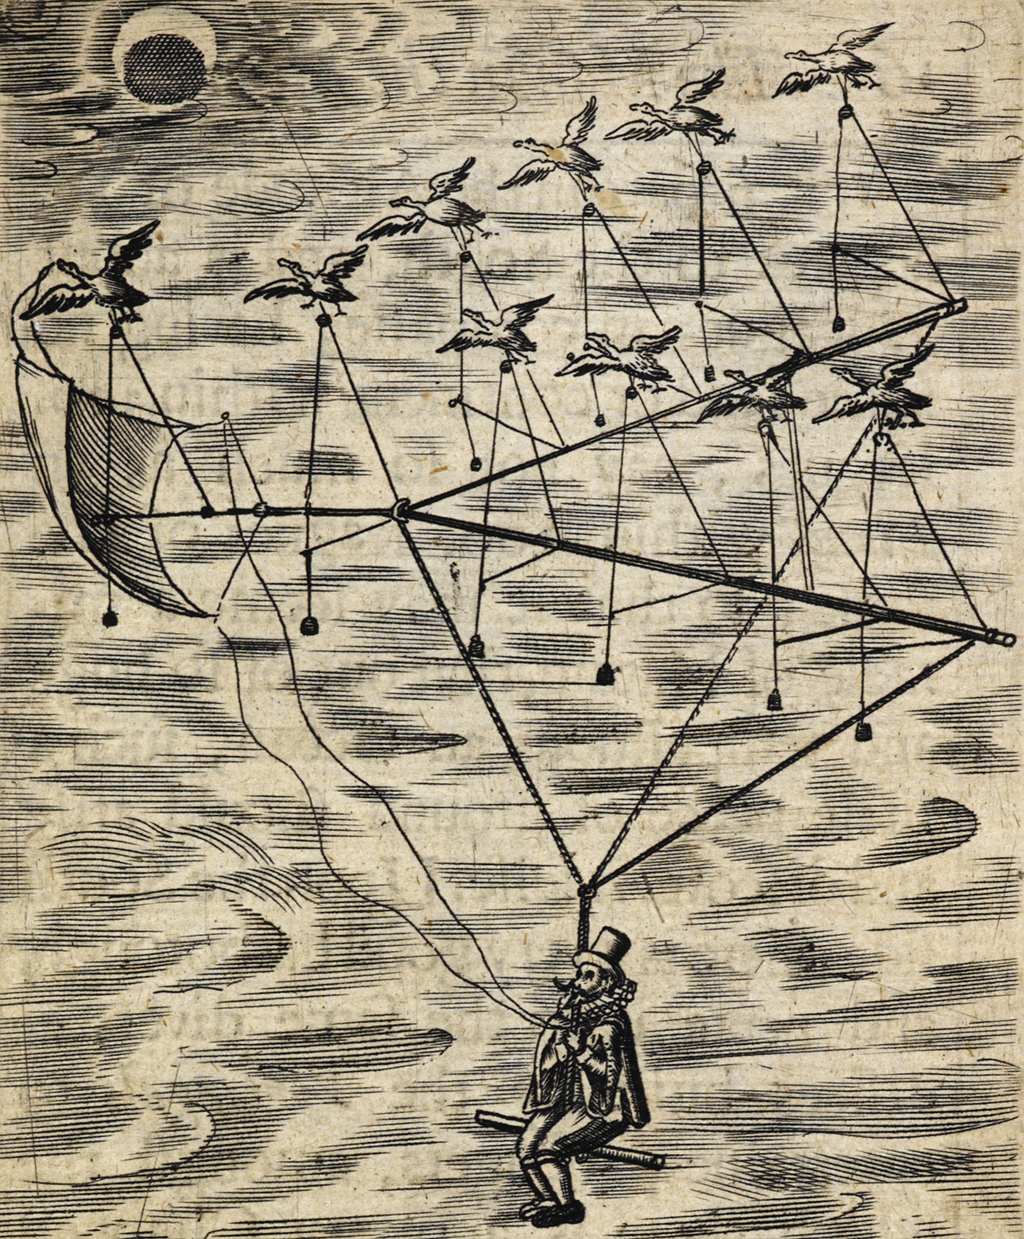 Look Closer Winging It Images From The Early Days Of Air Travel 1843 Magazine The Economist